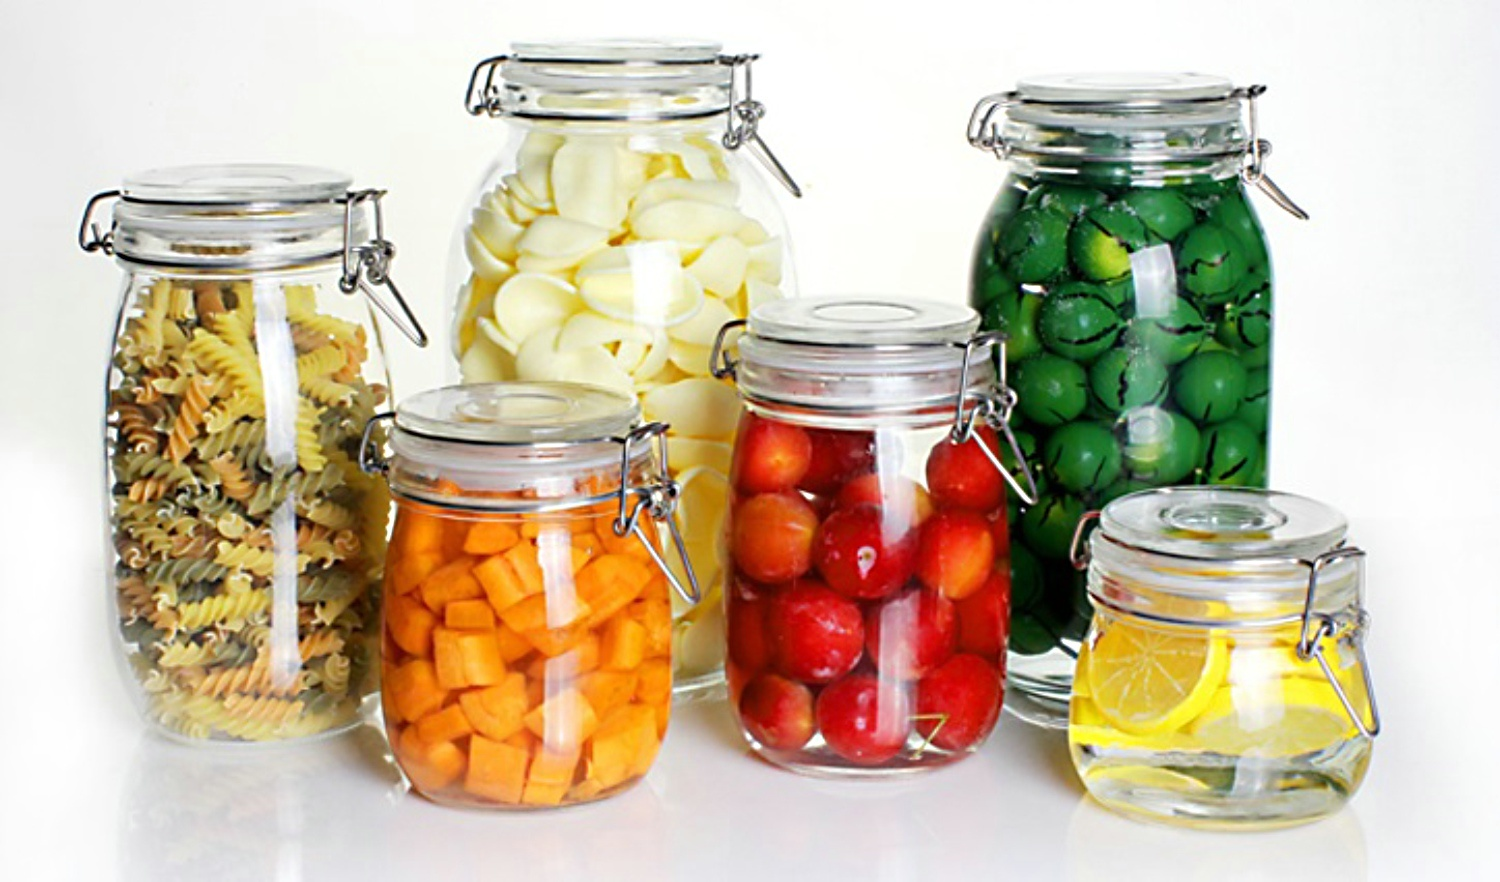 Glass Jar of Glassware in Kitchenware for Storage Food